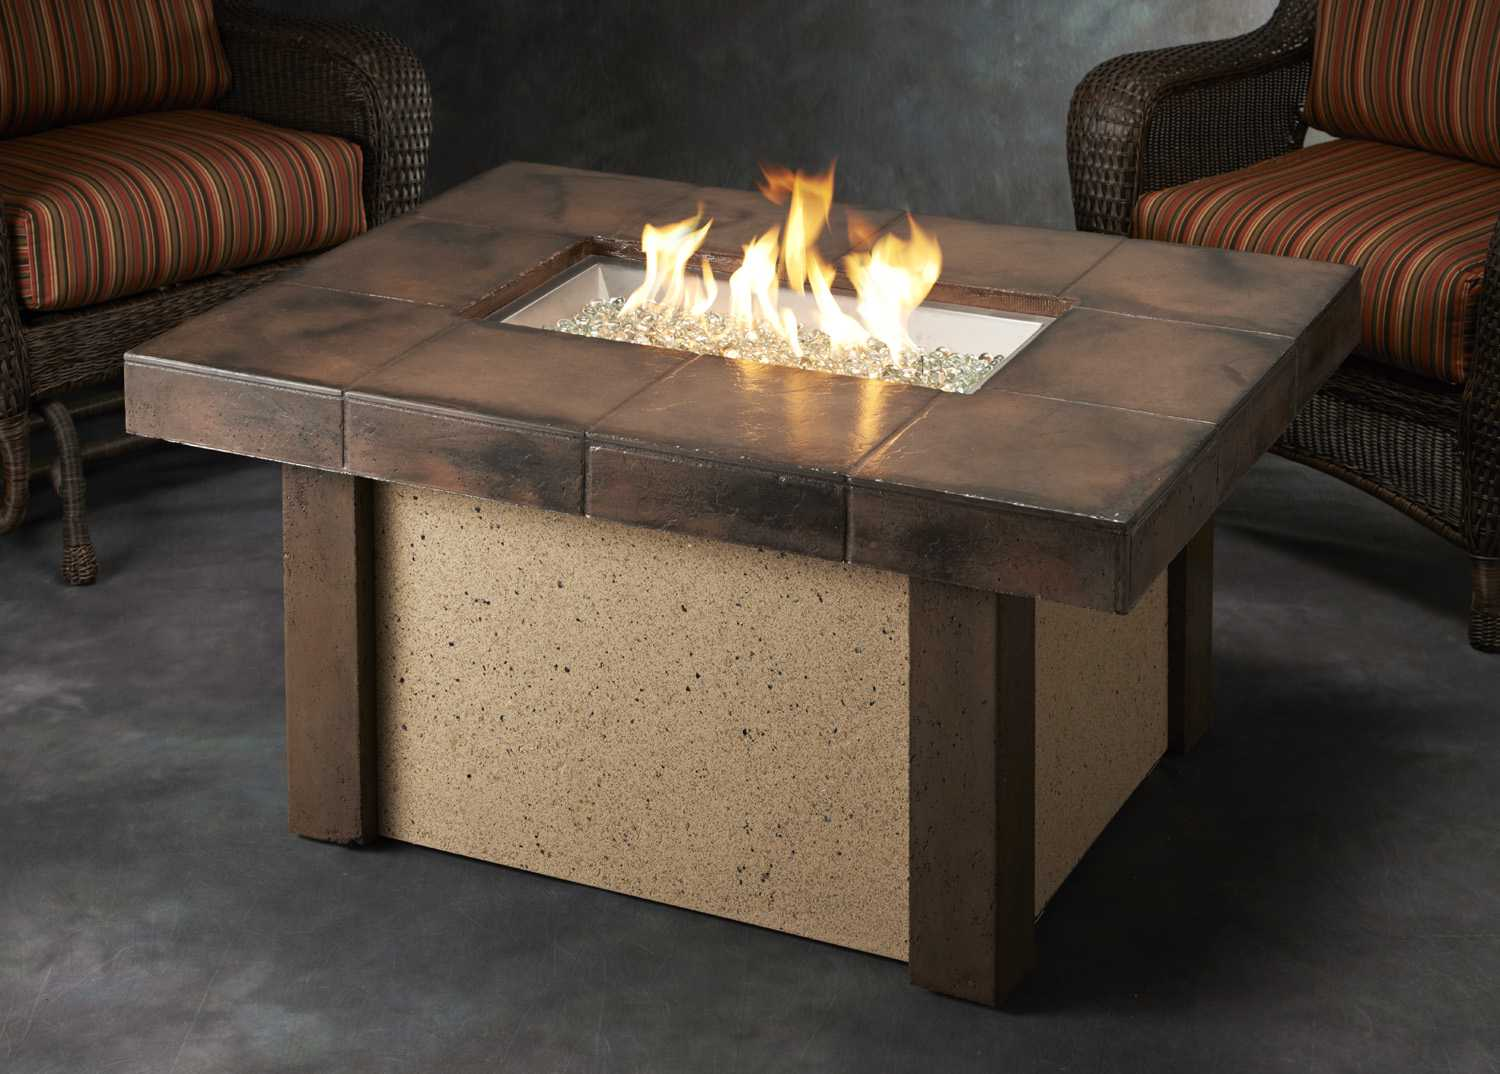 Outdoor greatroom rivers edge stone 48 x 36 rectangular for Rectangular stone fire pit